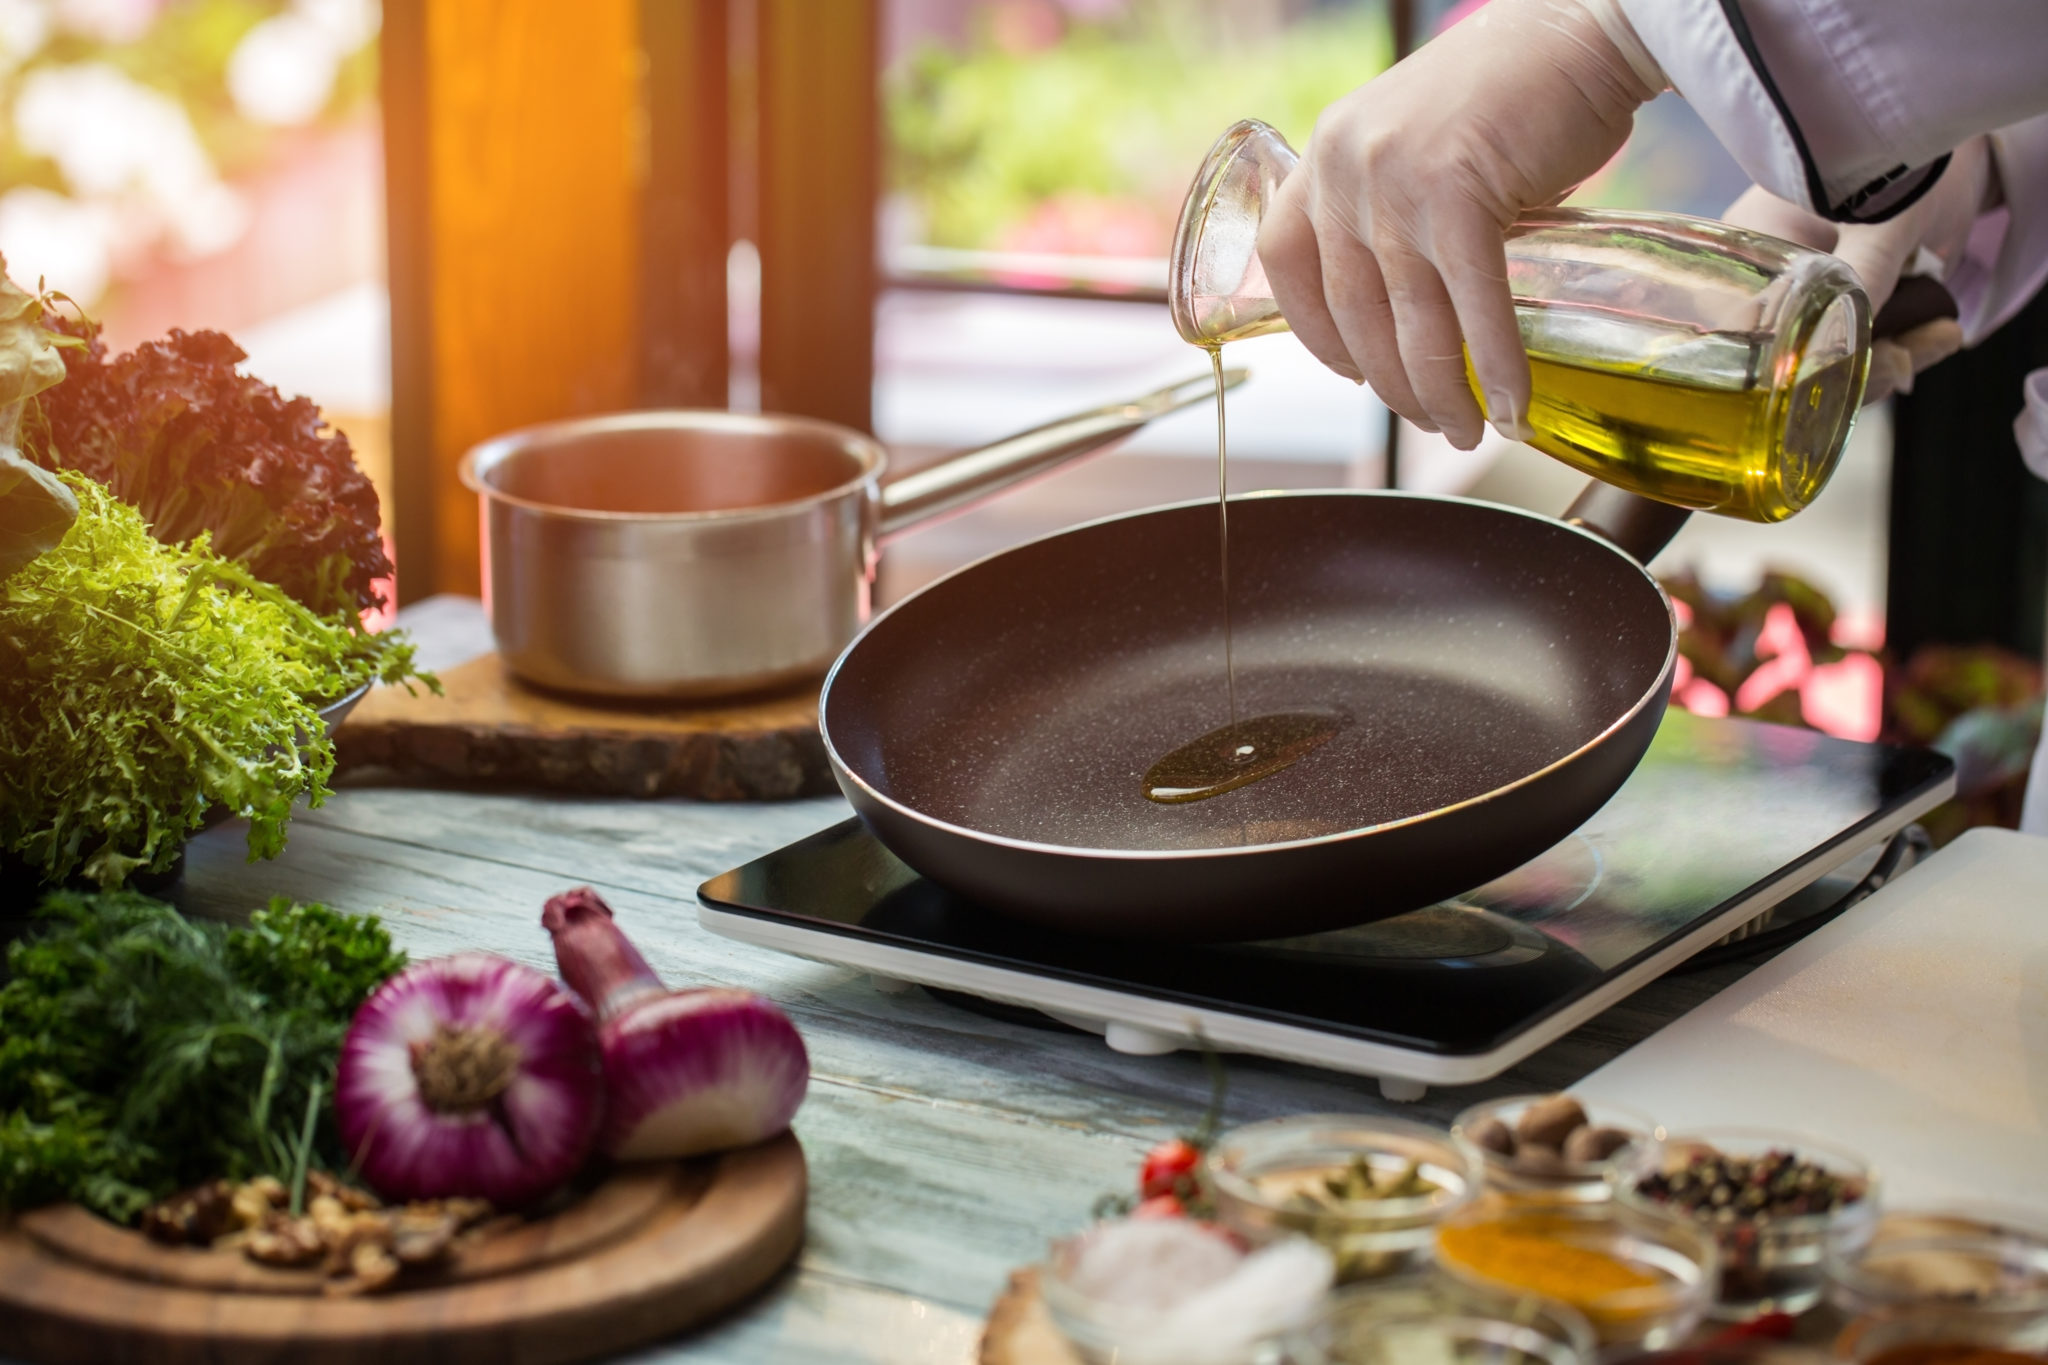 Cooking with Extra Virgin Olive Oil – Healthcare Professional Version